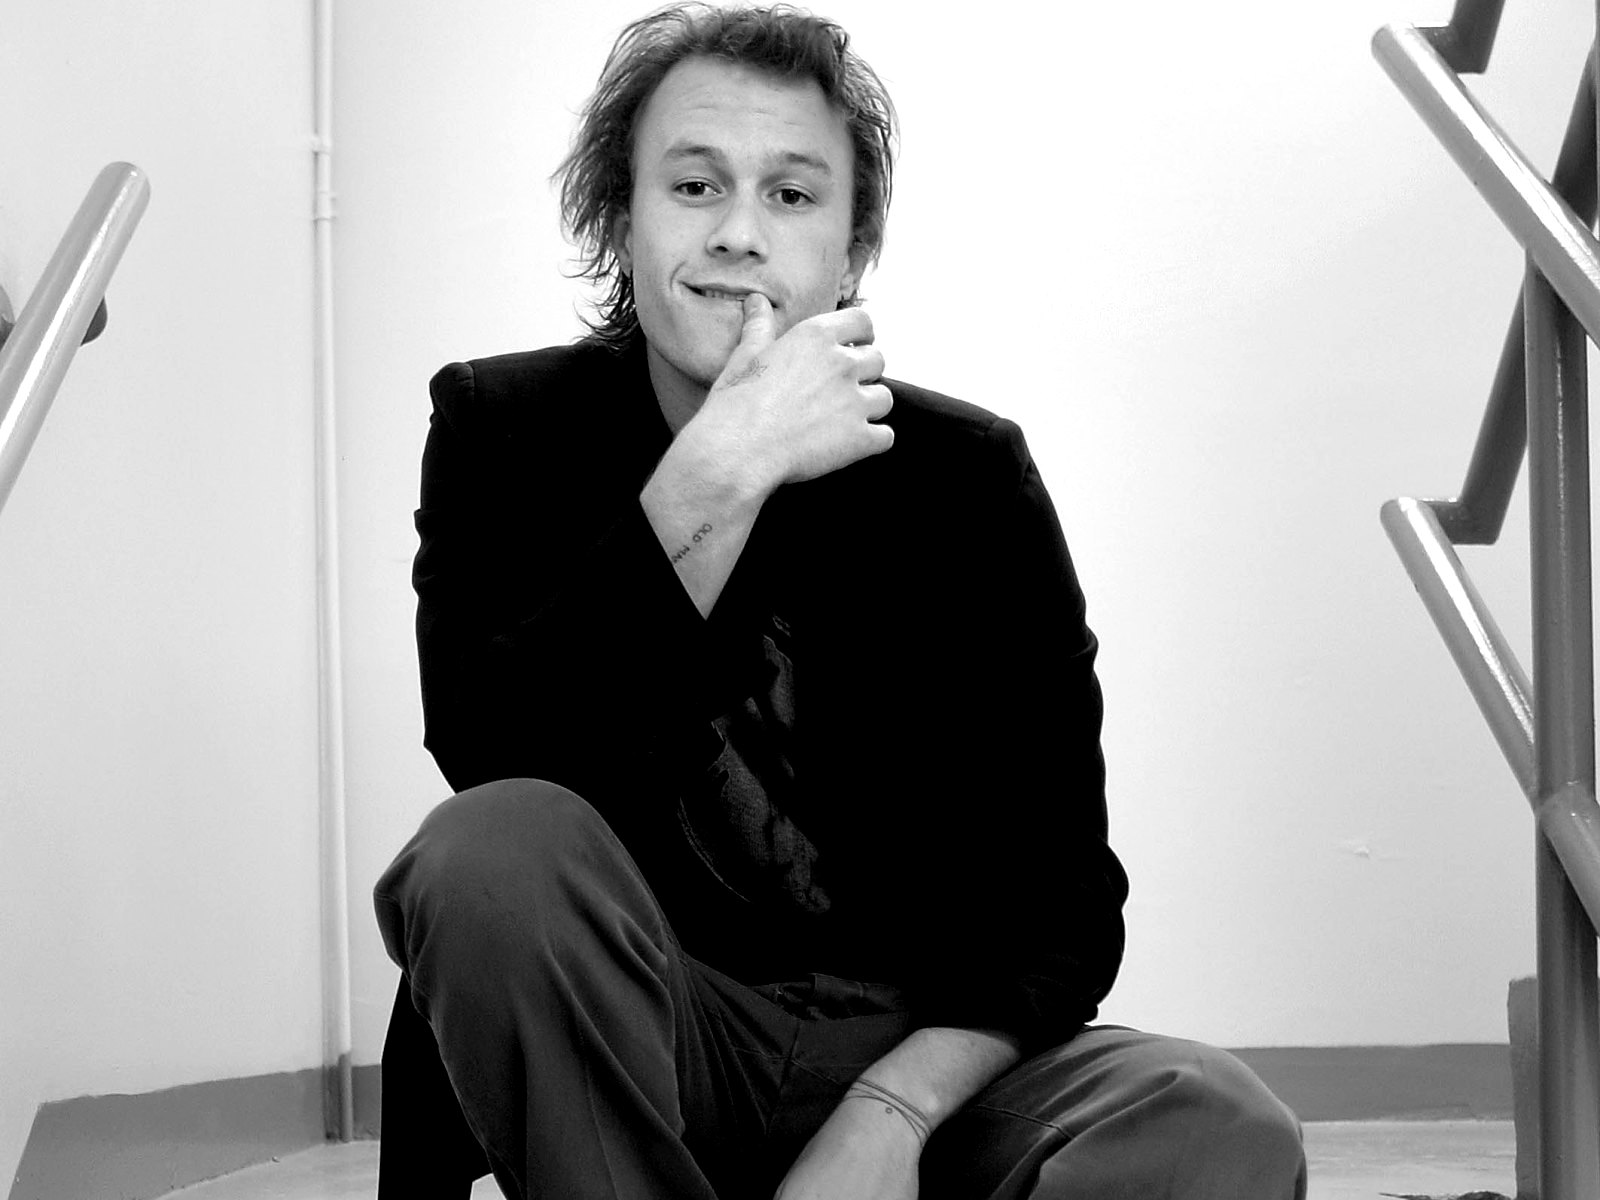 monochrome heath ledger wallpaper 52840